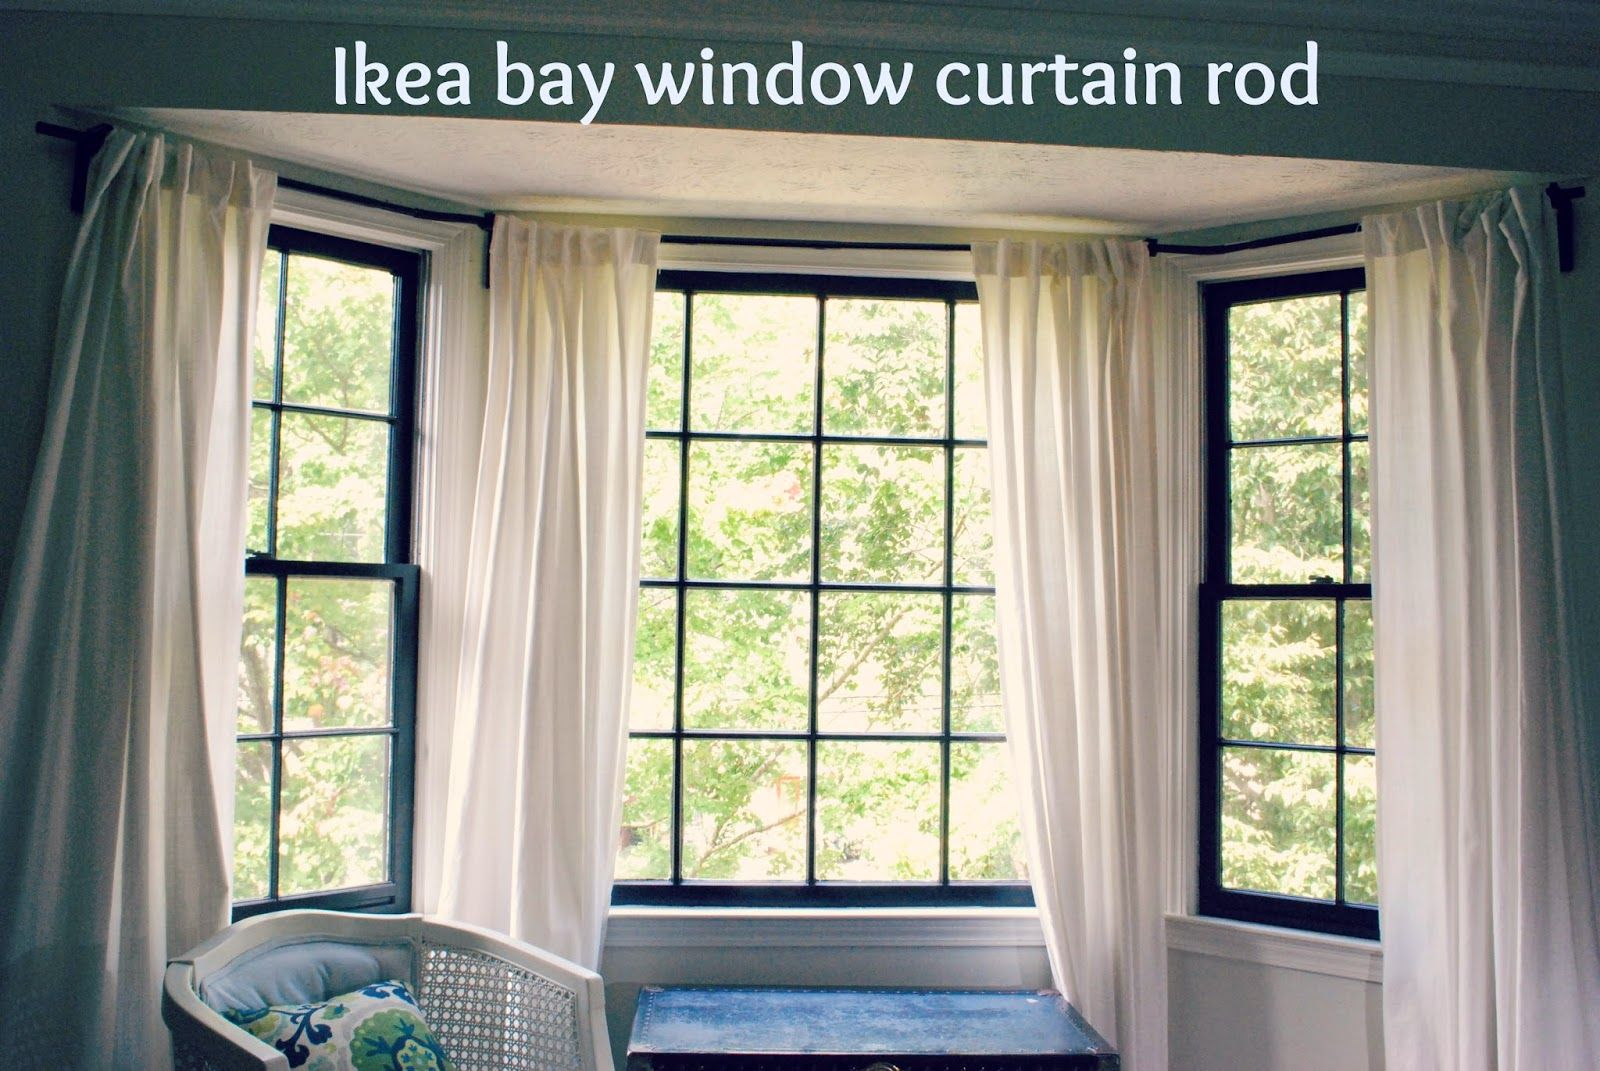 Between blue and yellow bay window curtain rod for the home